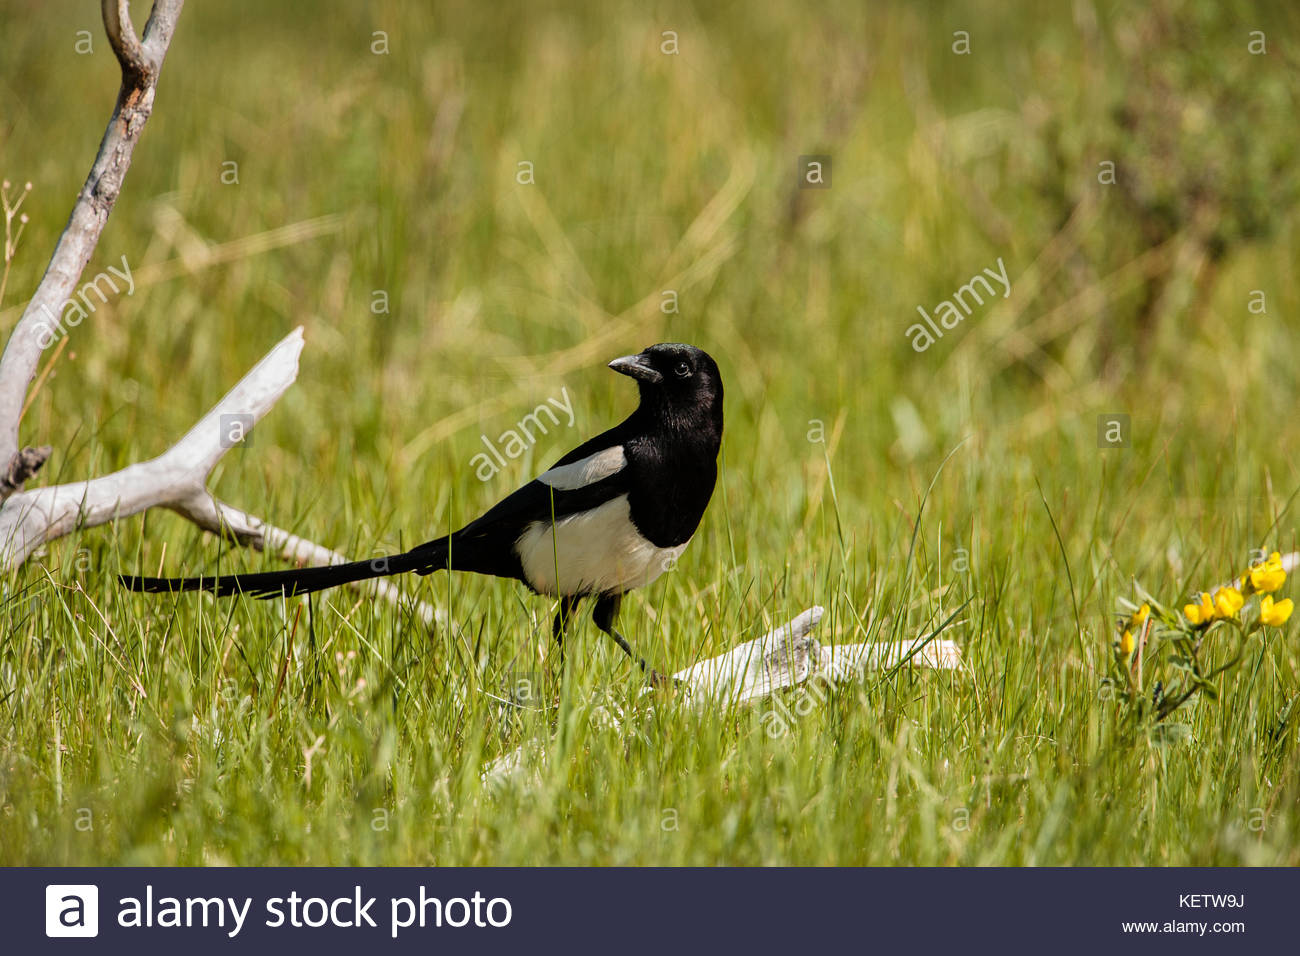 Black-billed magpie, reviewing meadow within Moraine Park, Rocky Mountain National Park, Colorado - Stock Image